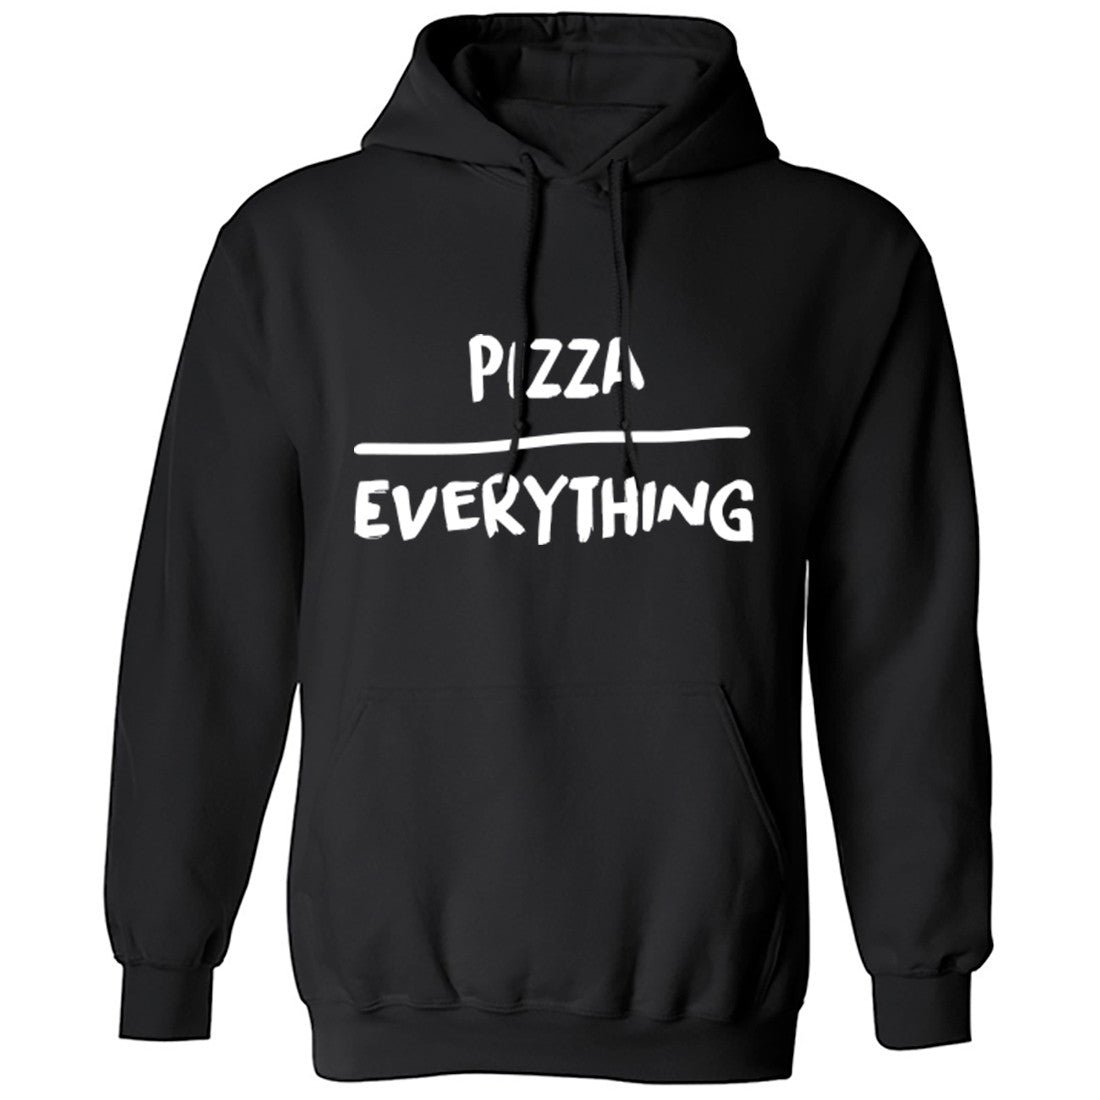 Pizza Over Everything unisex fit hoodie hooded sweatshirt K0120 8WtKO9q